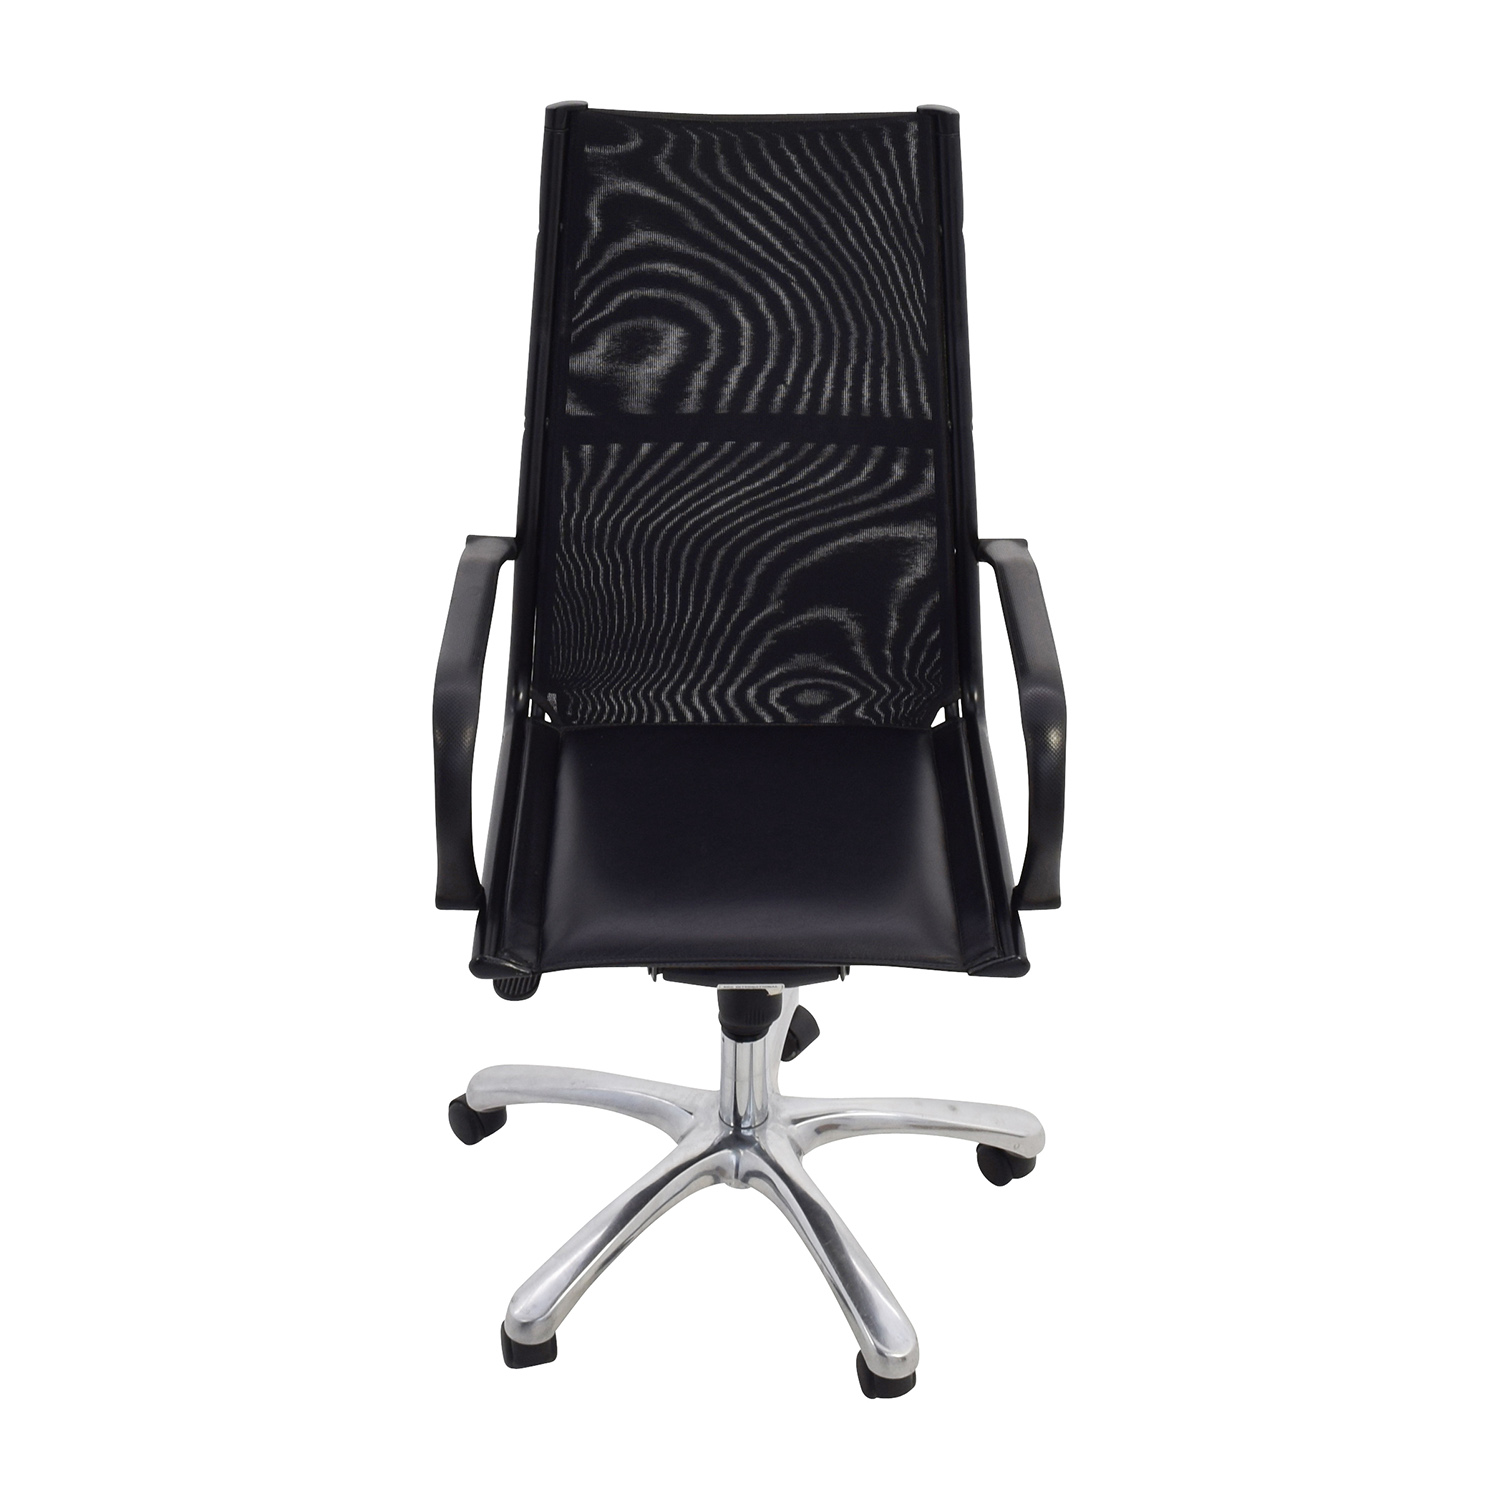 ERG International ERG International Black Office Chair used